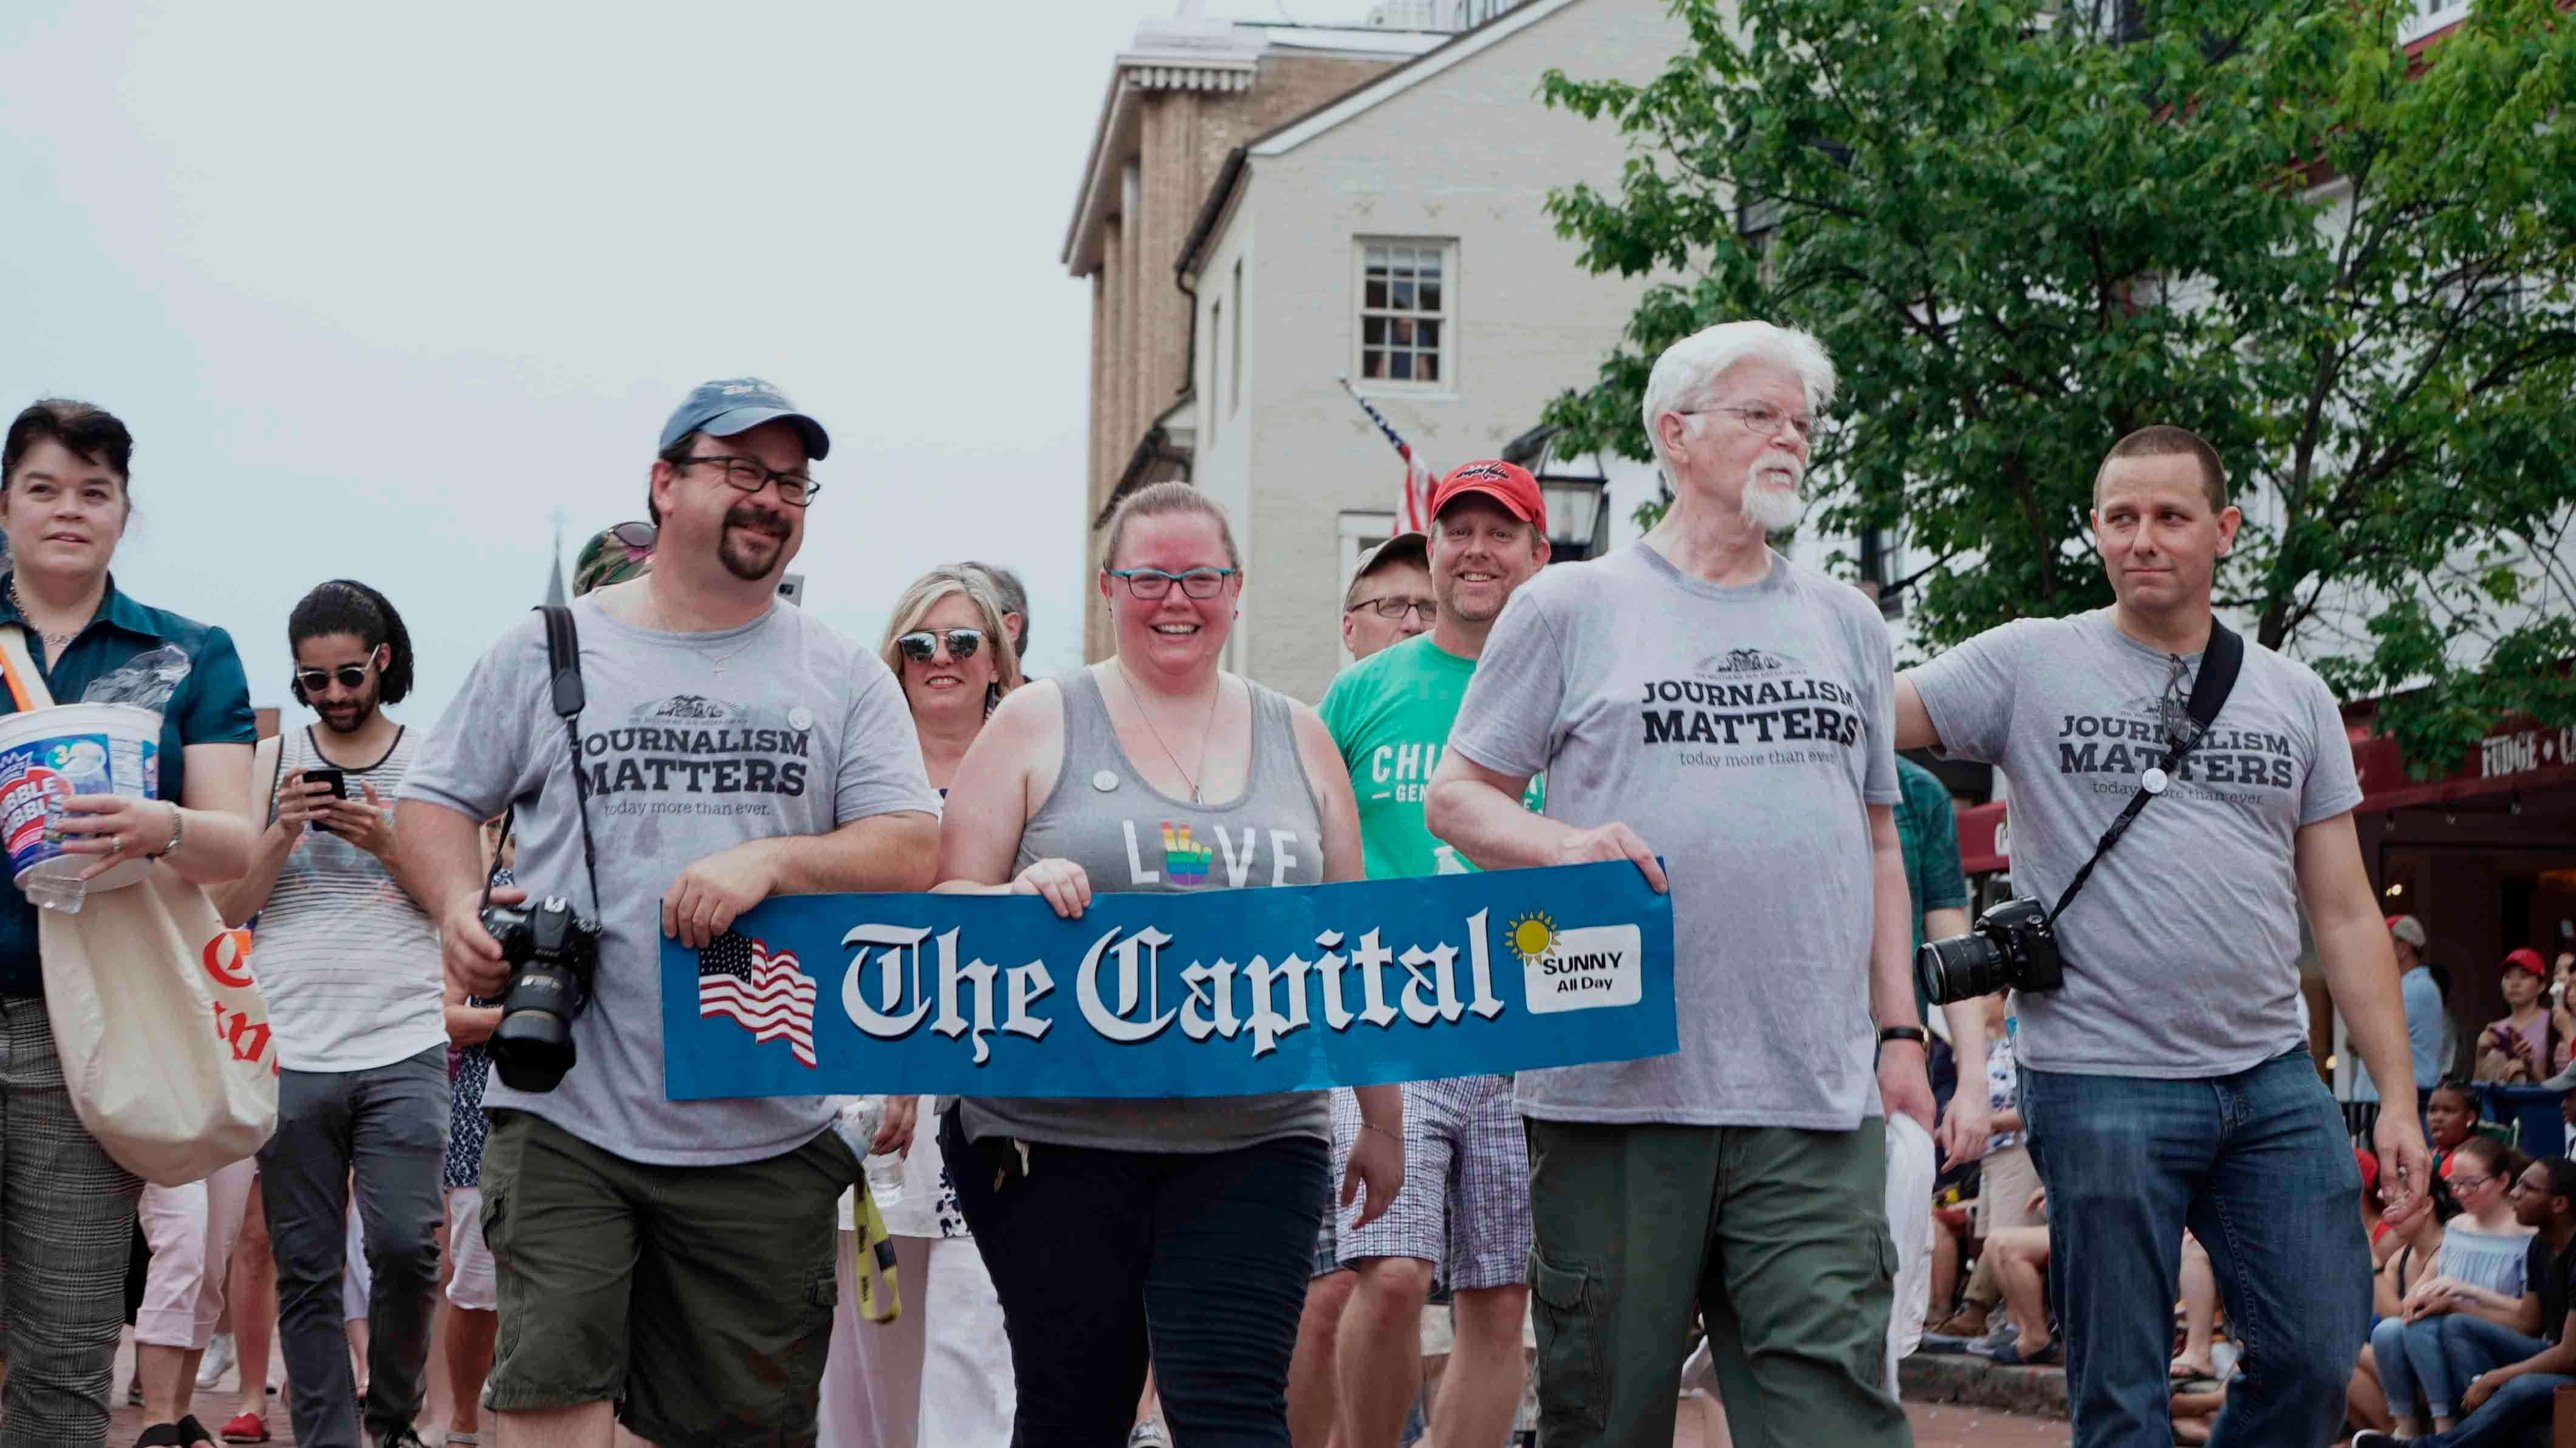 "Current and former Capital Gazette staff members march in the Annapolis 4th of July parade in Annapolis, Md., Wednesday, July 4, 2018. The Baltimore Sun reports that a few dozen current and former journalists from the Capital Gazette, where five employees were shot to death, participated in the Wednesday evening parade, where they were greeted by supportive whistles, cheers and applause. Several staffers T-shirts reading ""journalism matters,"" while others in the parade wore T-shirts that said, ""press on."" (Jay Reed/The Baltimore Sun via AP)"